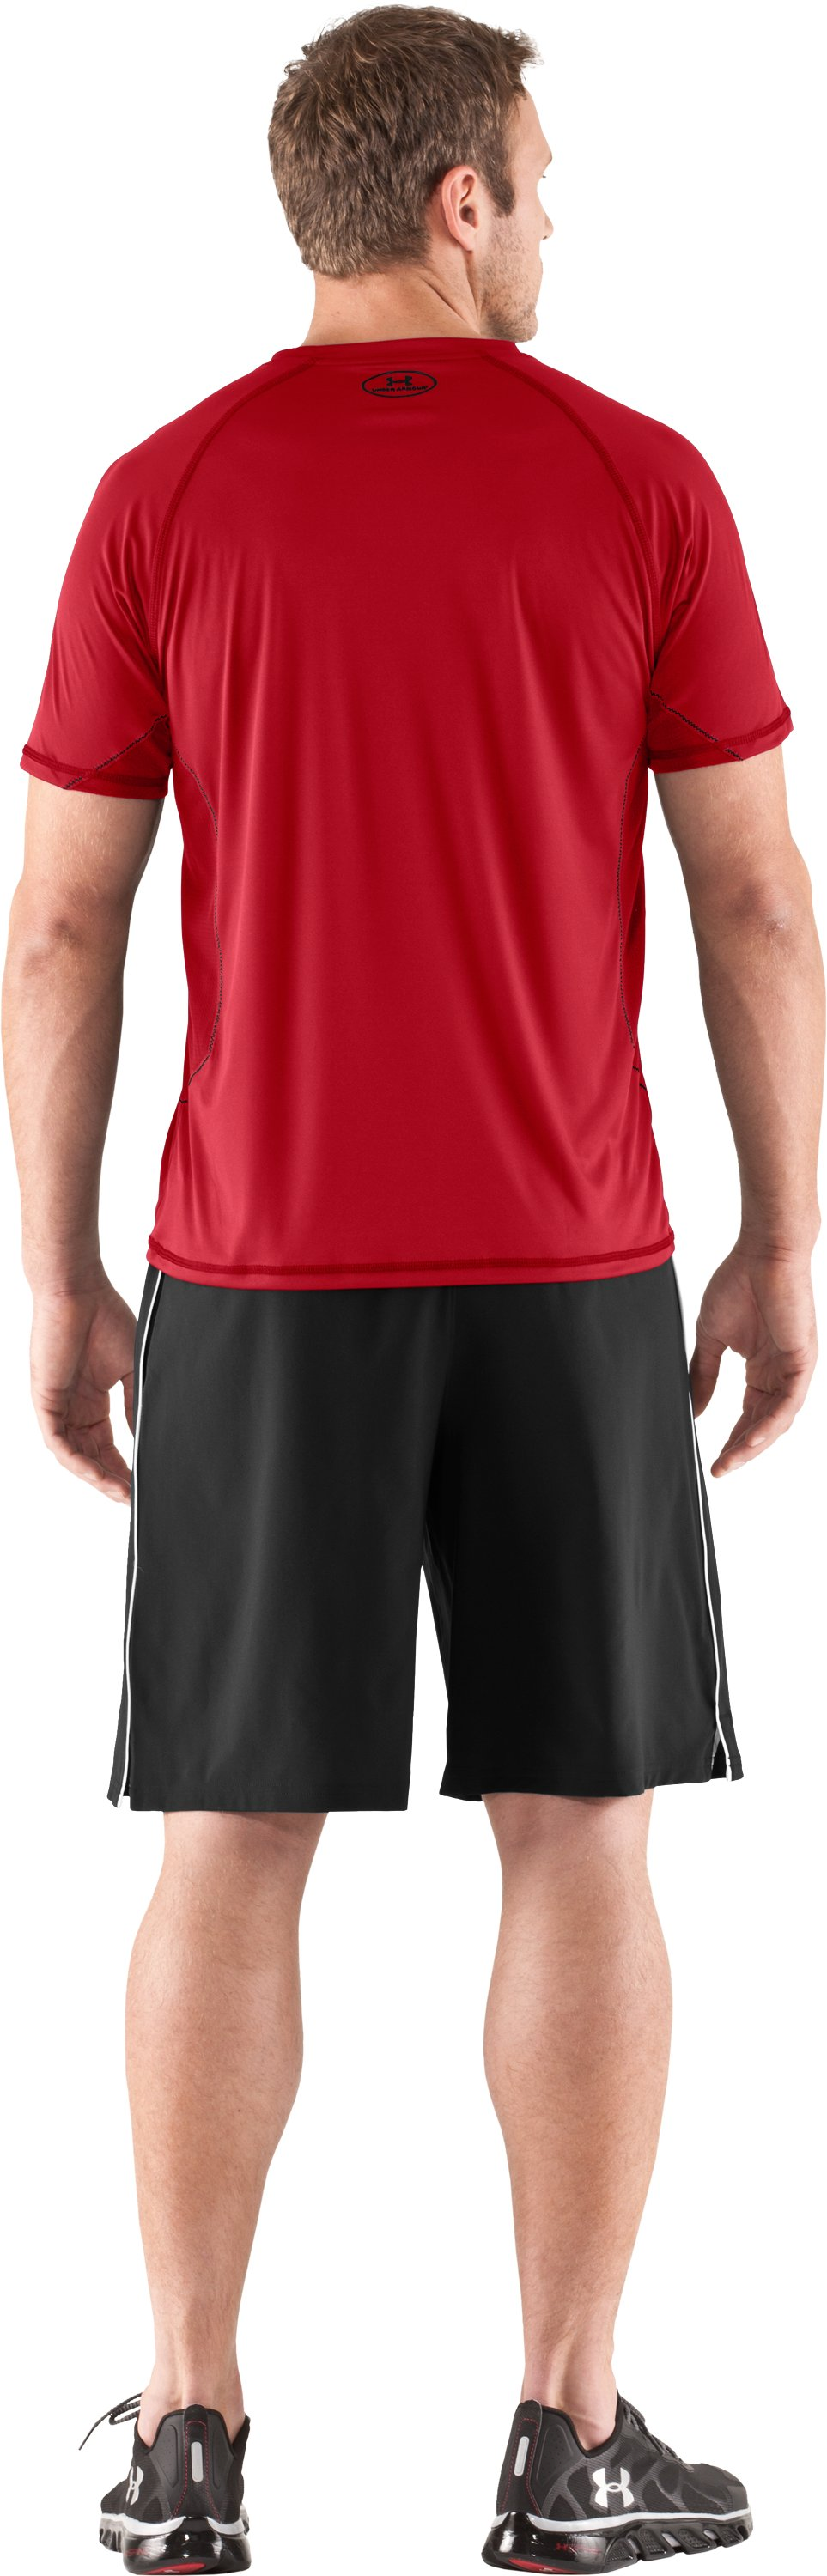 Men's HeatGear® Flyweight Short Sleeve, Red, Back